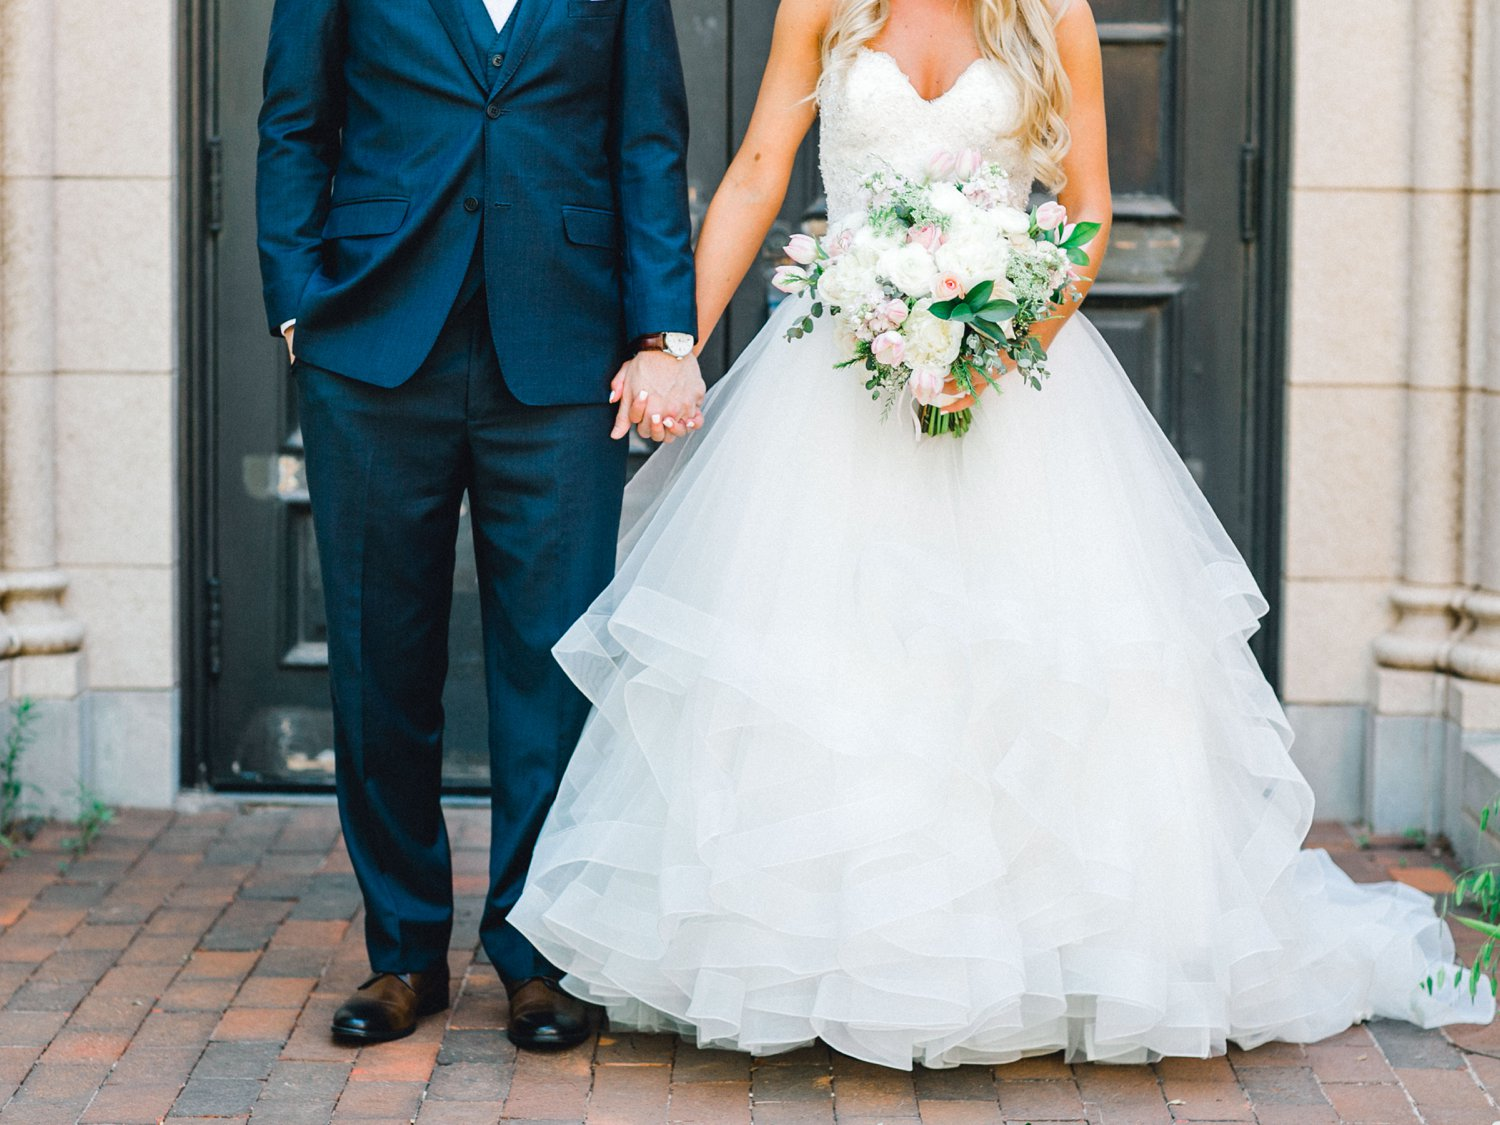 MADI_AND_WILL_STEPHENS_ALLEEJ_LUBBOCK_PHOTOGRAPHER_TEXAS+TECH+FRAZIER_ALUMNI0034.jpg